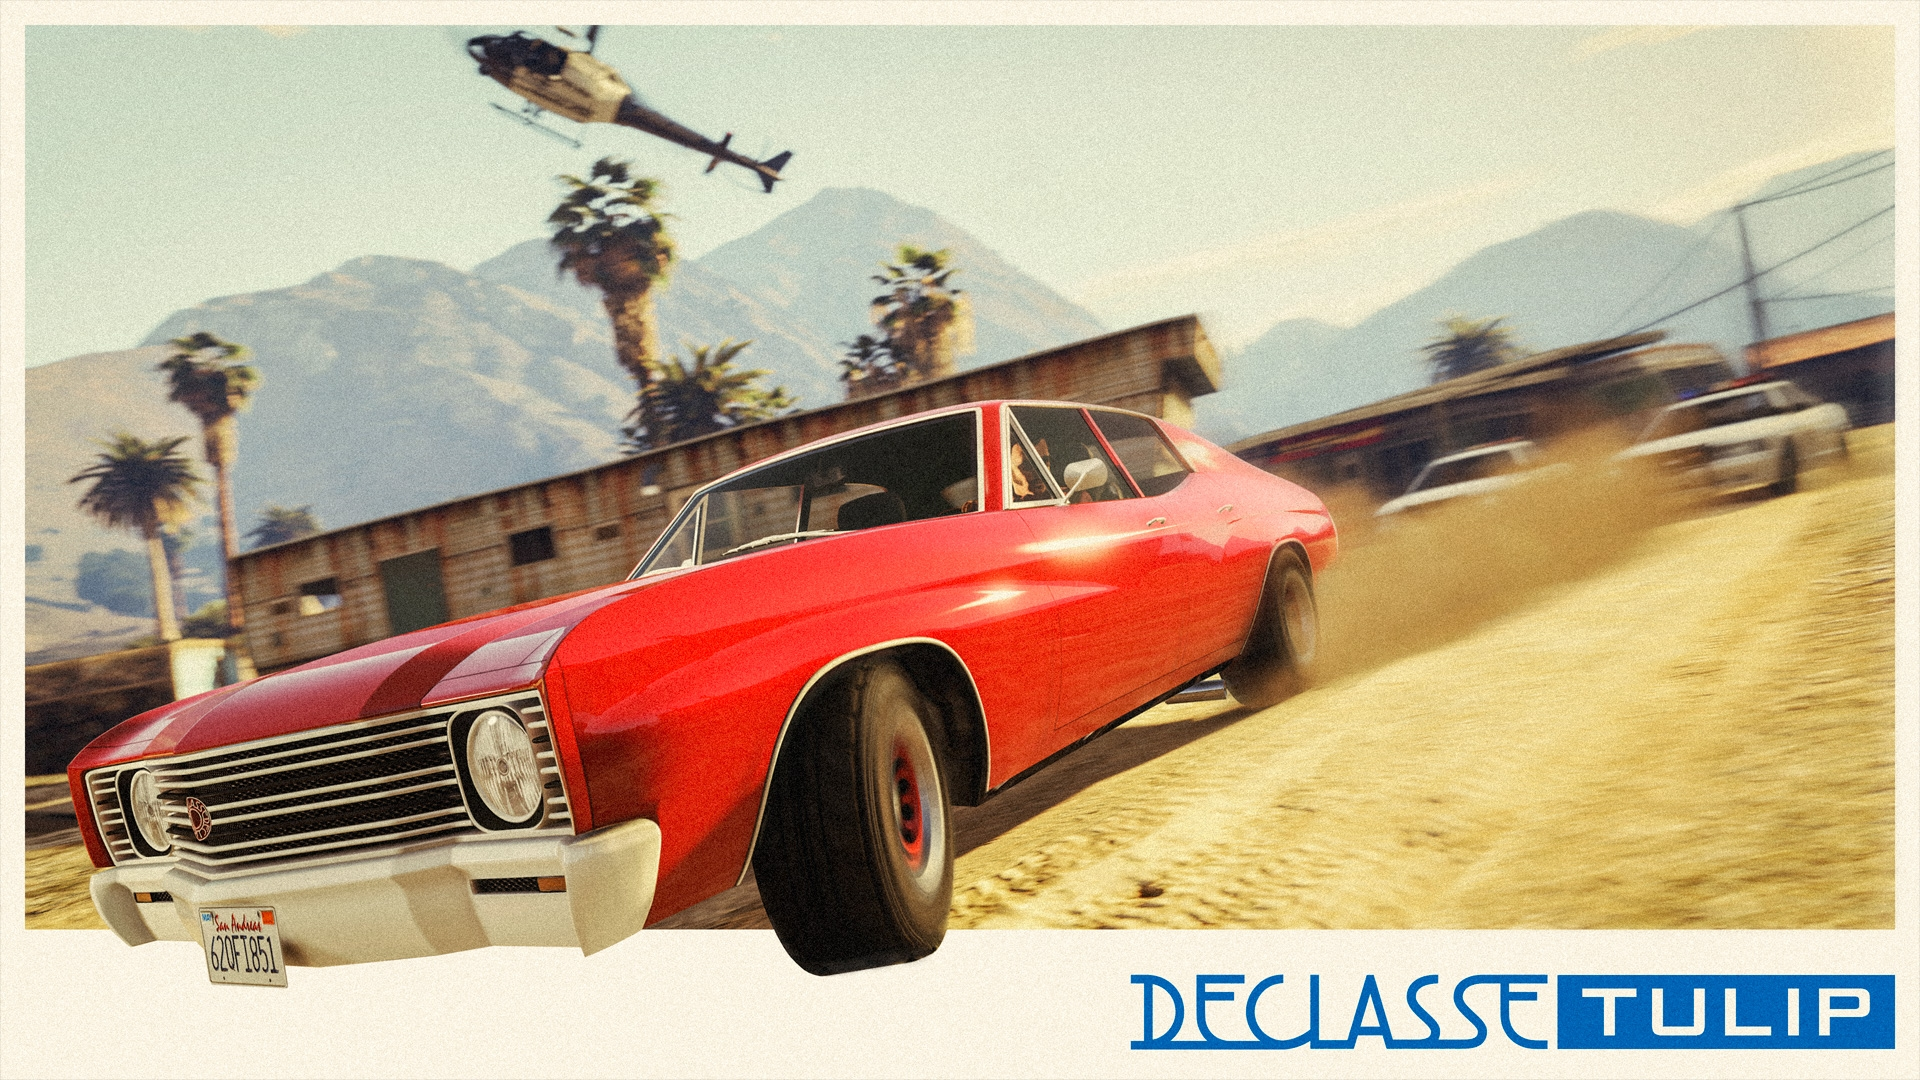 The Declasse Tulip Muscle Car Rockstar Games